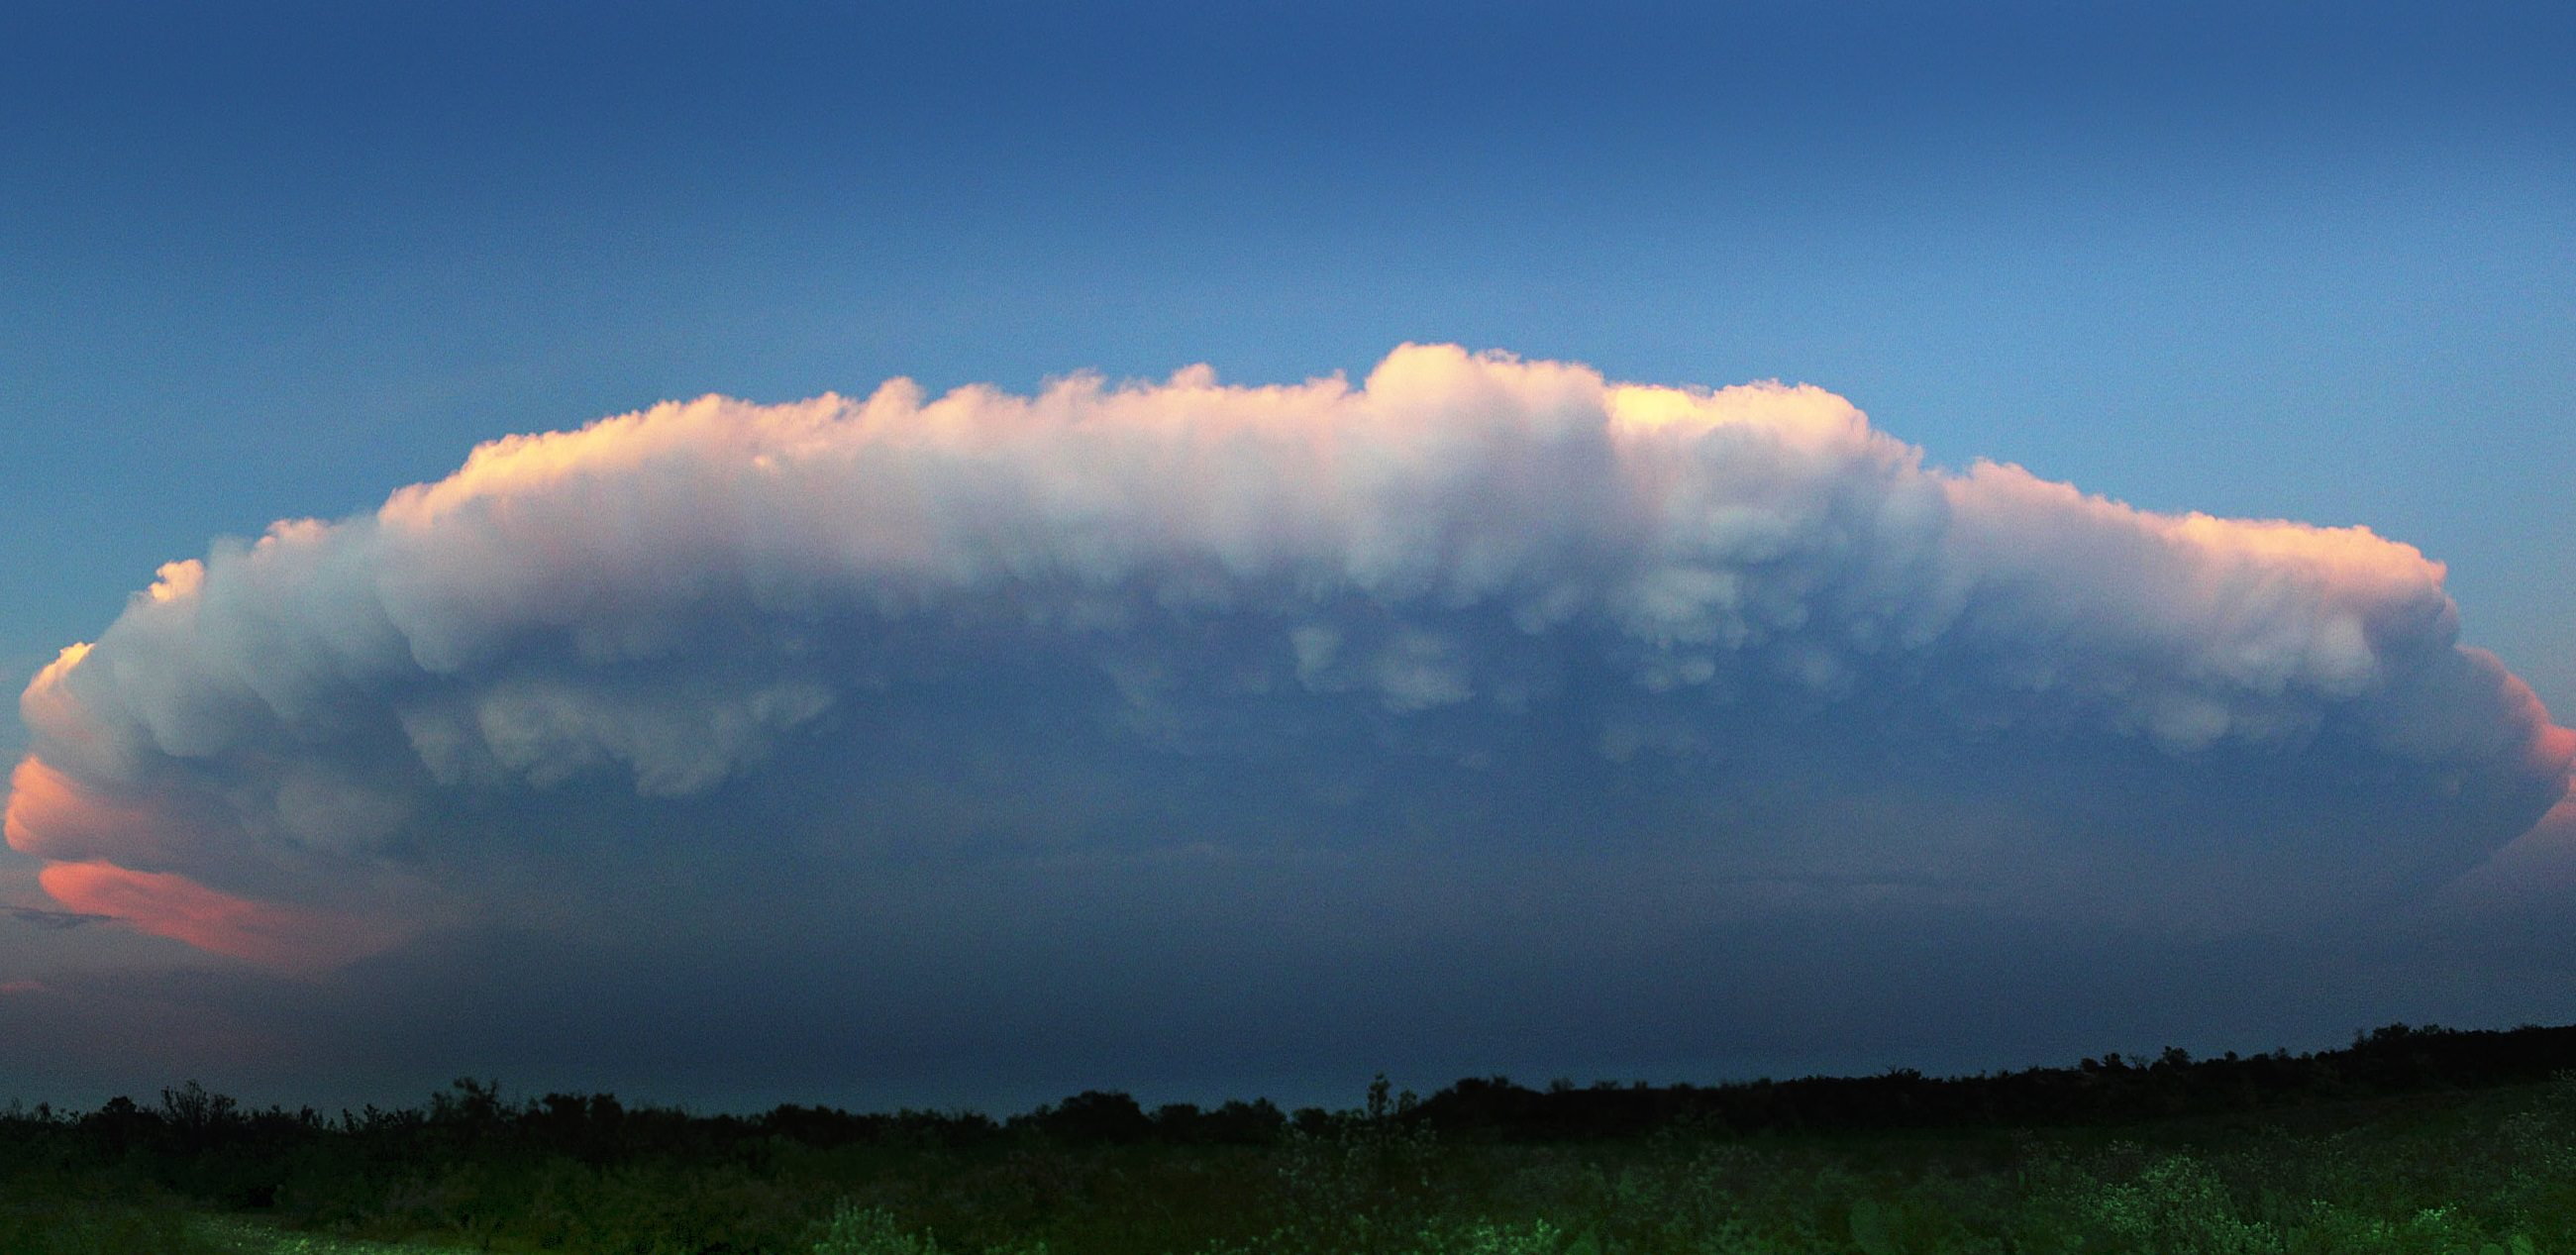 Cumulonimbus clouds. Credit: NASA